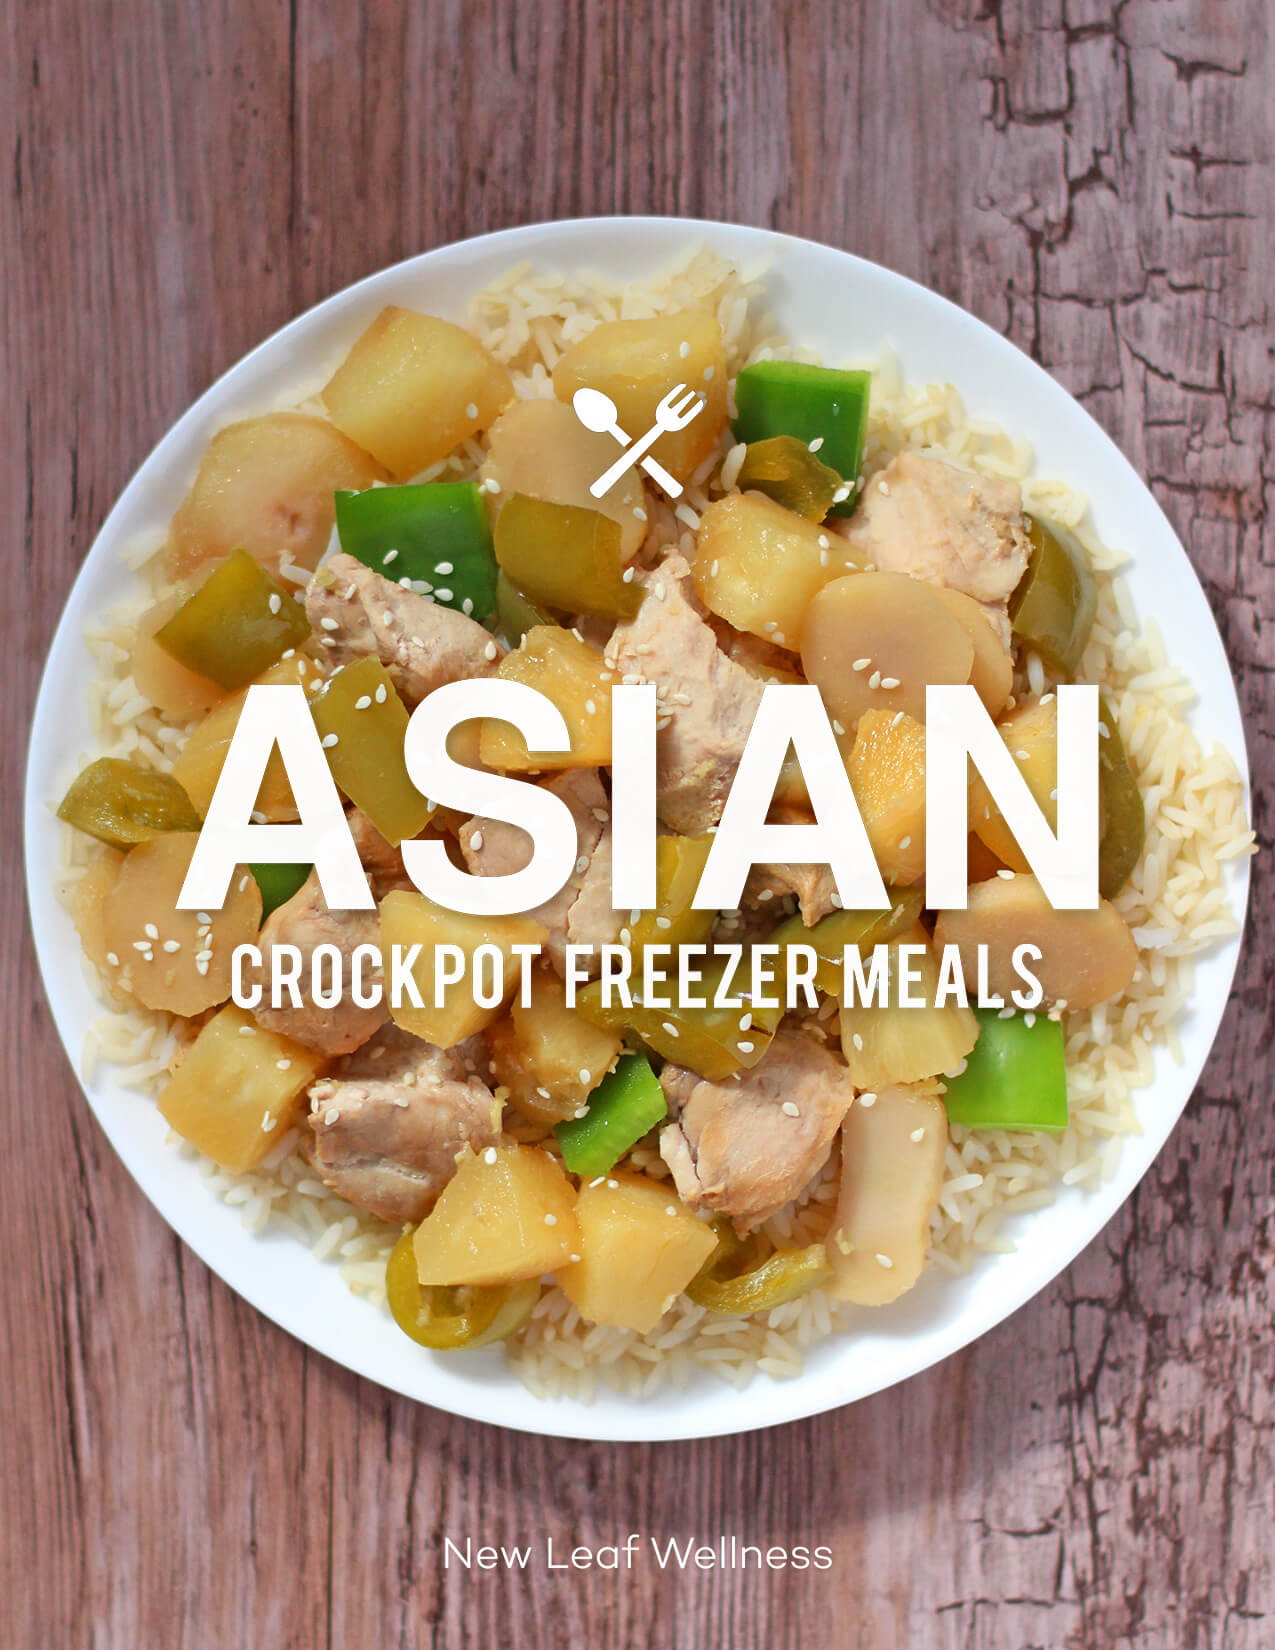 Asian Crockpot Freezer Meals Cookbook